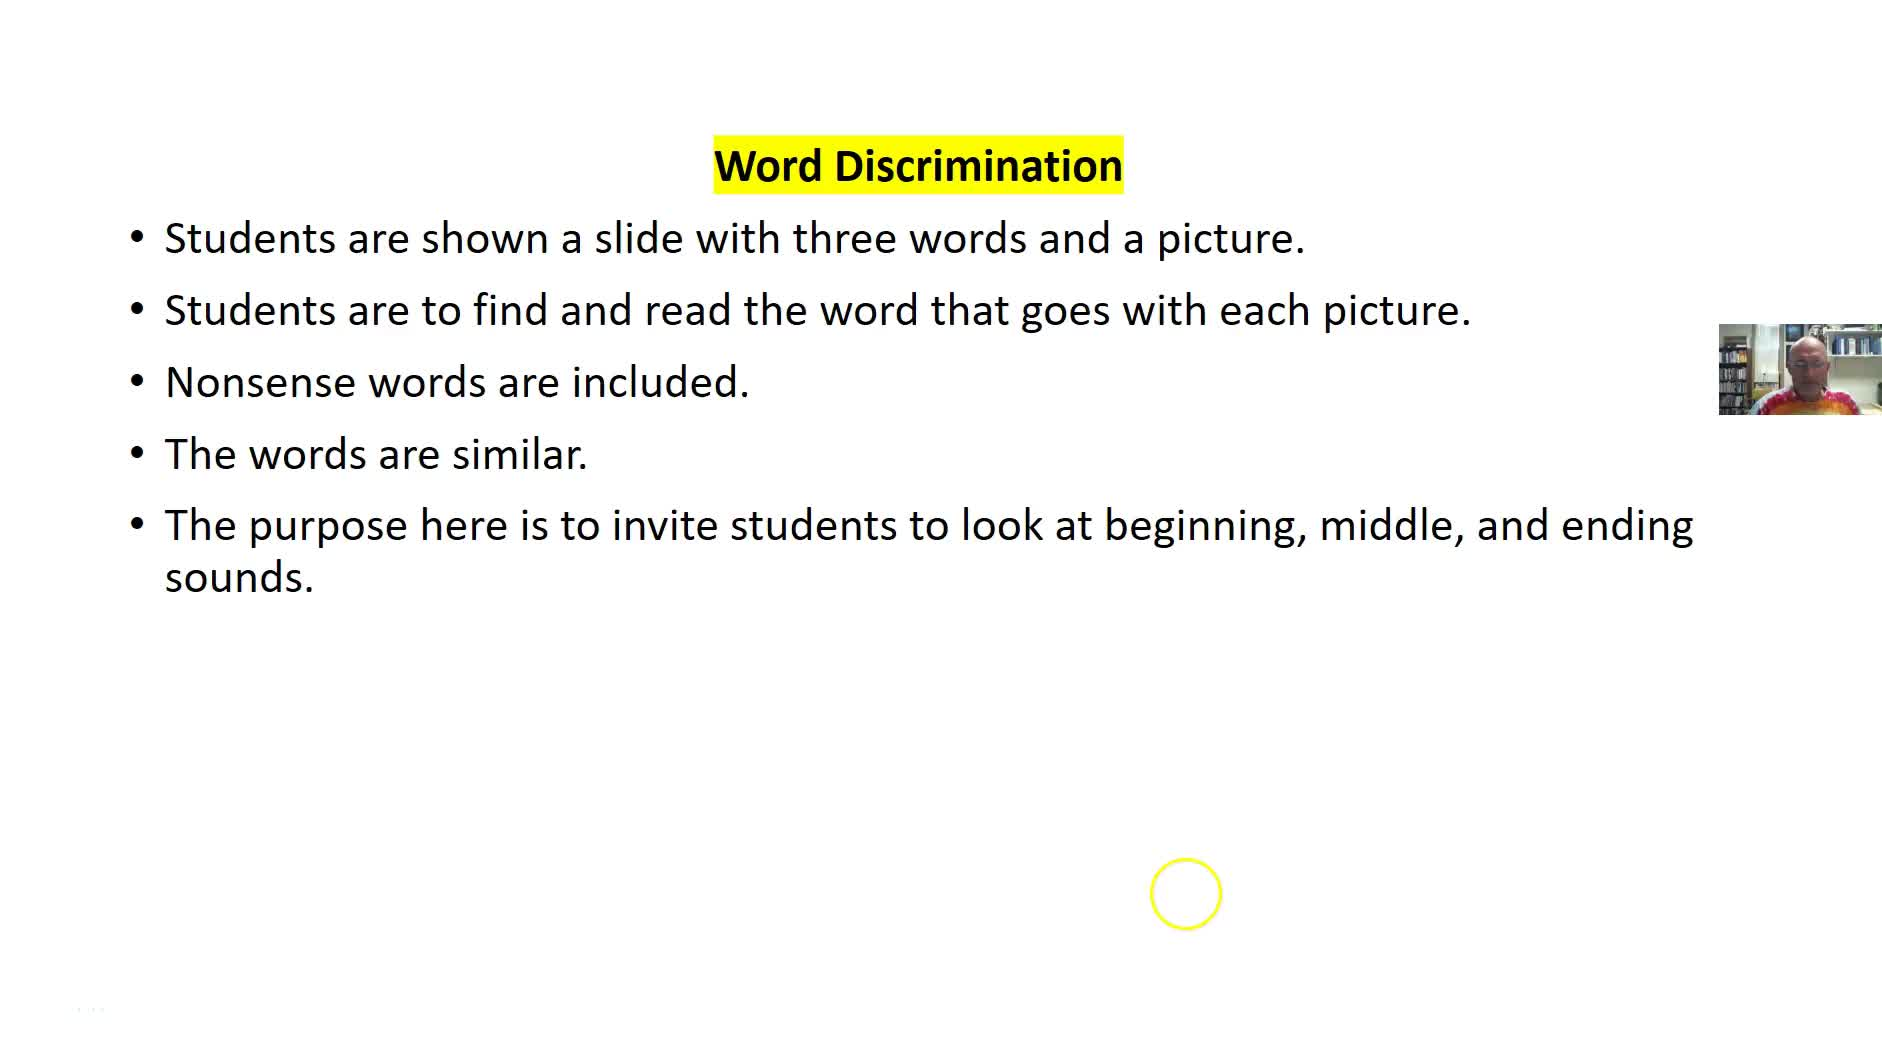 WORD DISCRIMINATION FOR WORD IDENTIFICATION